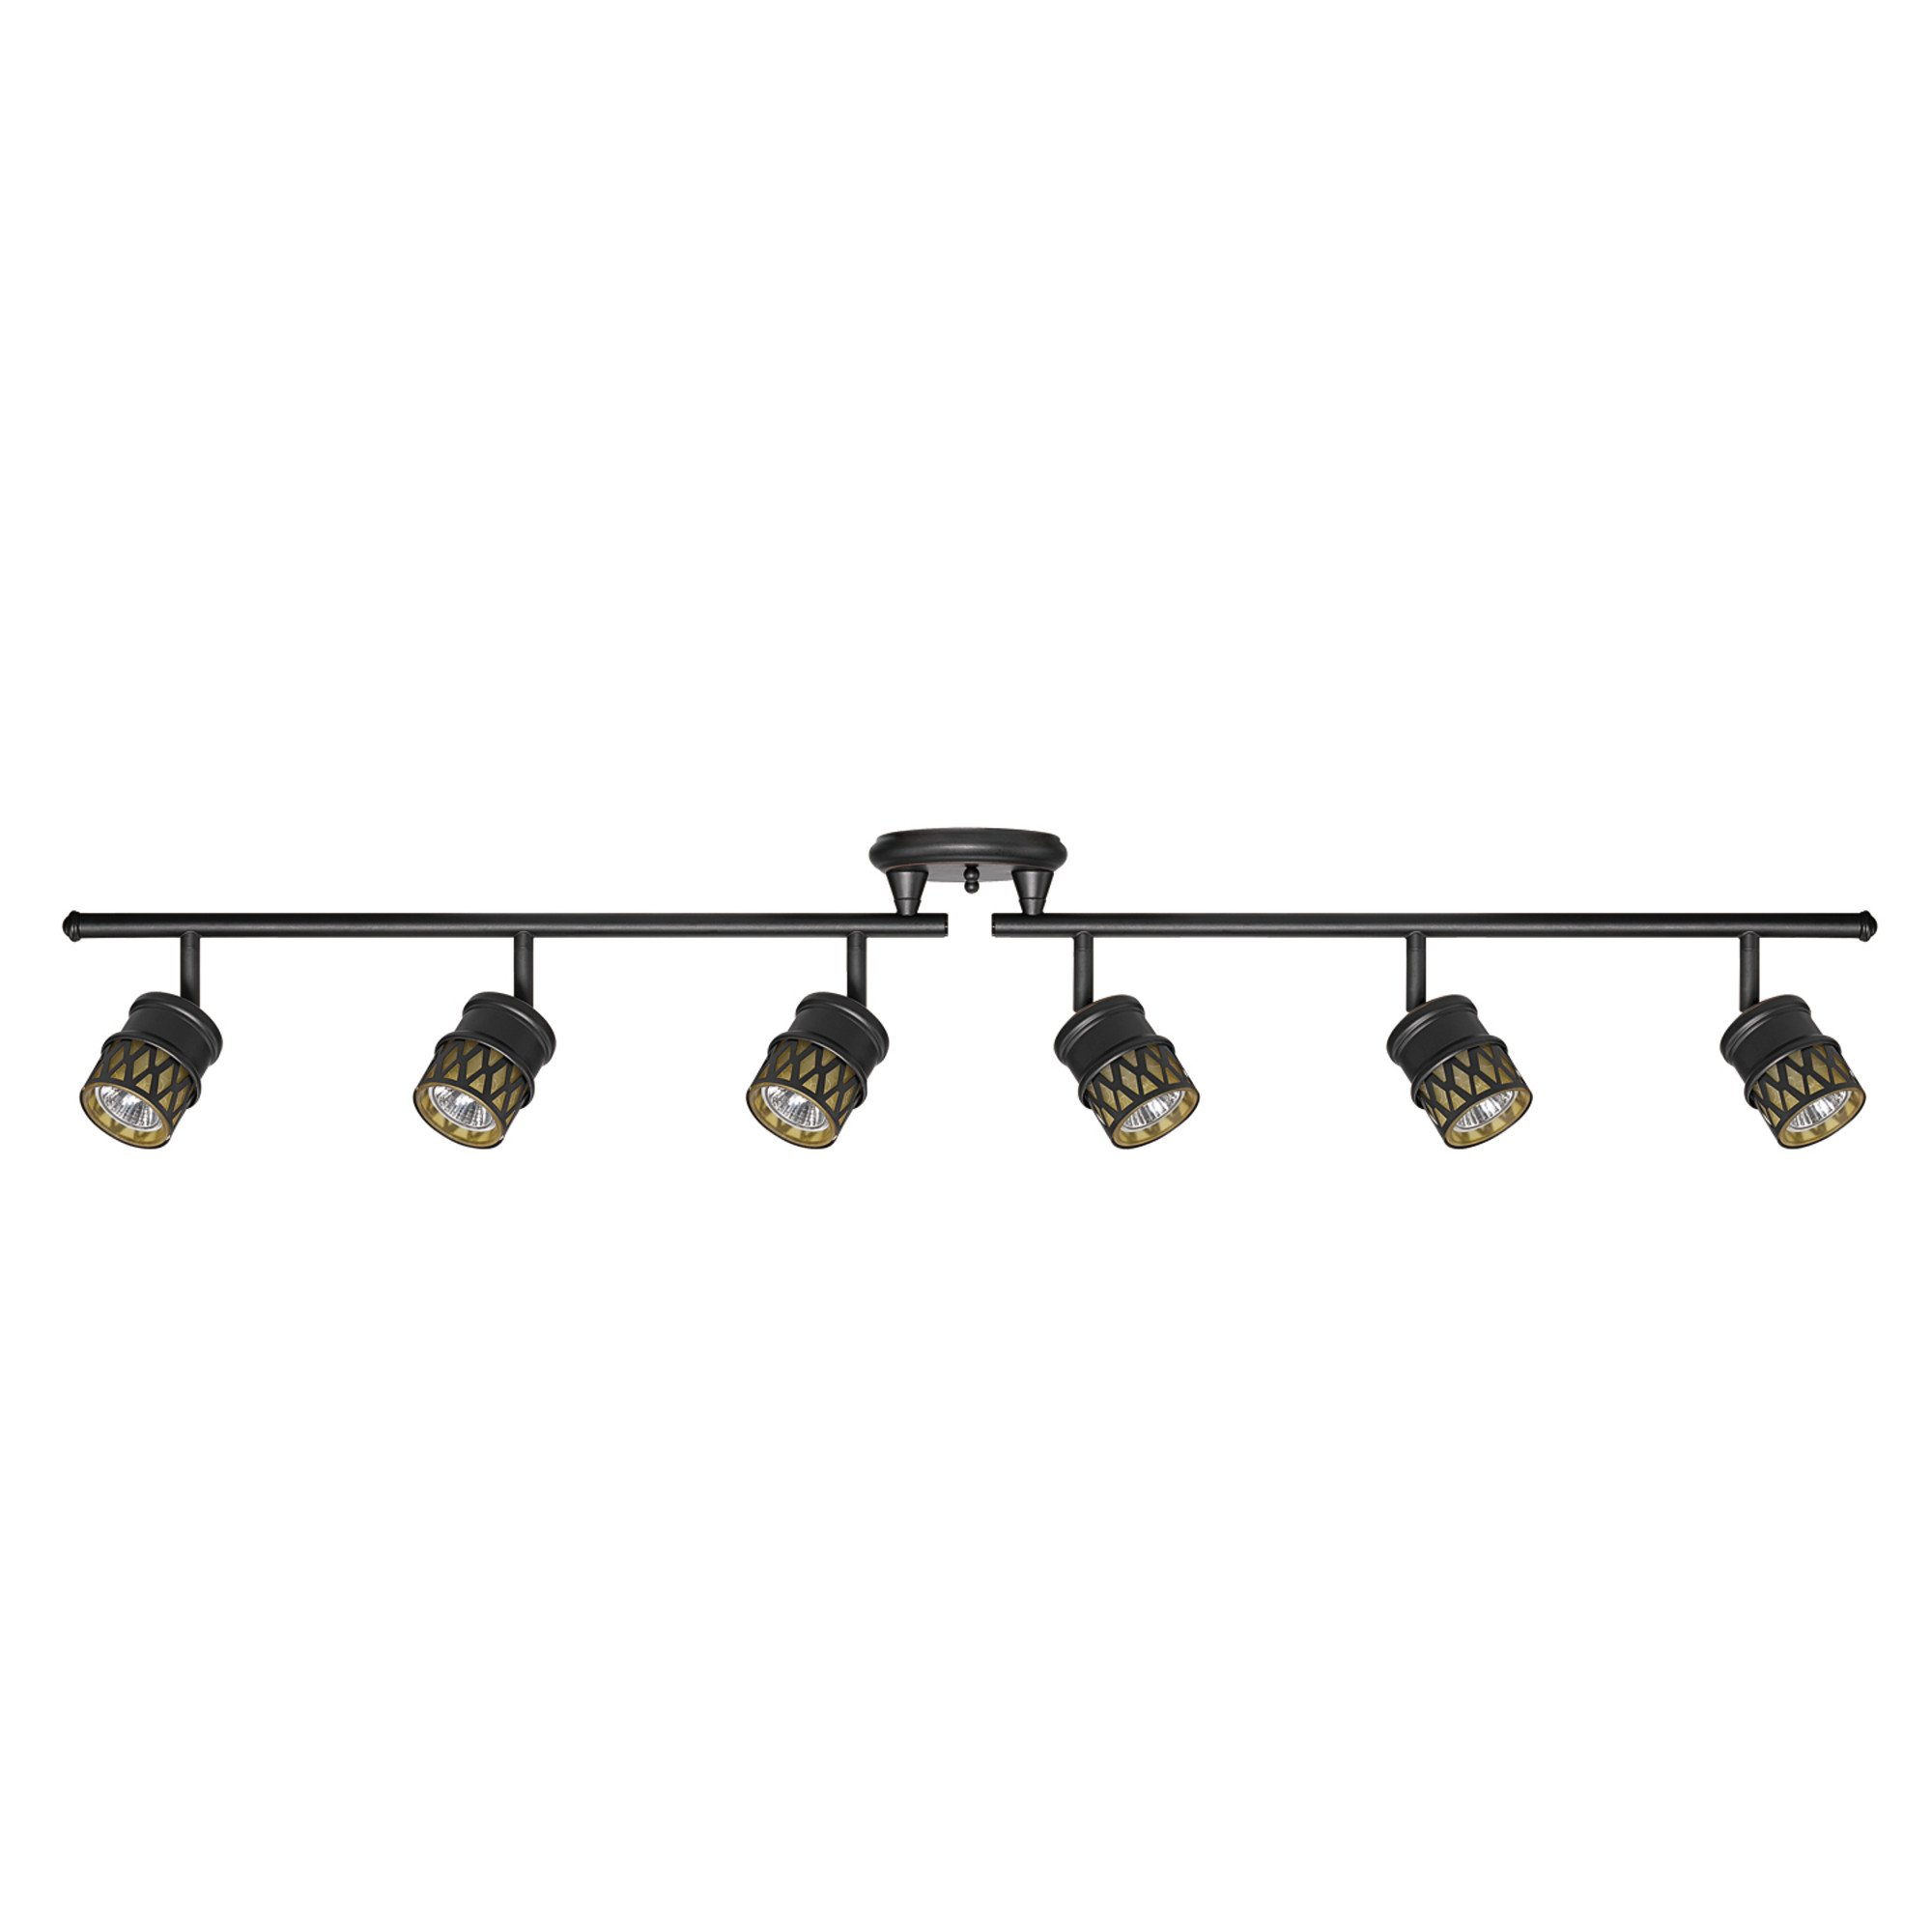 Globe Electric Kearney 6-Light Foldable Track Lighting Kit, Oil Rubbed Bronze Finish, Champagne Glass Shades, 6 Bulbs Included, 59086